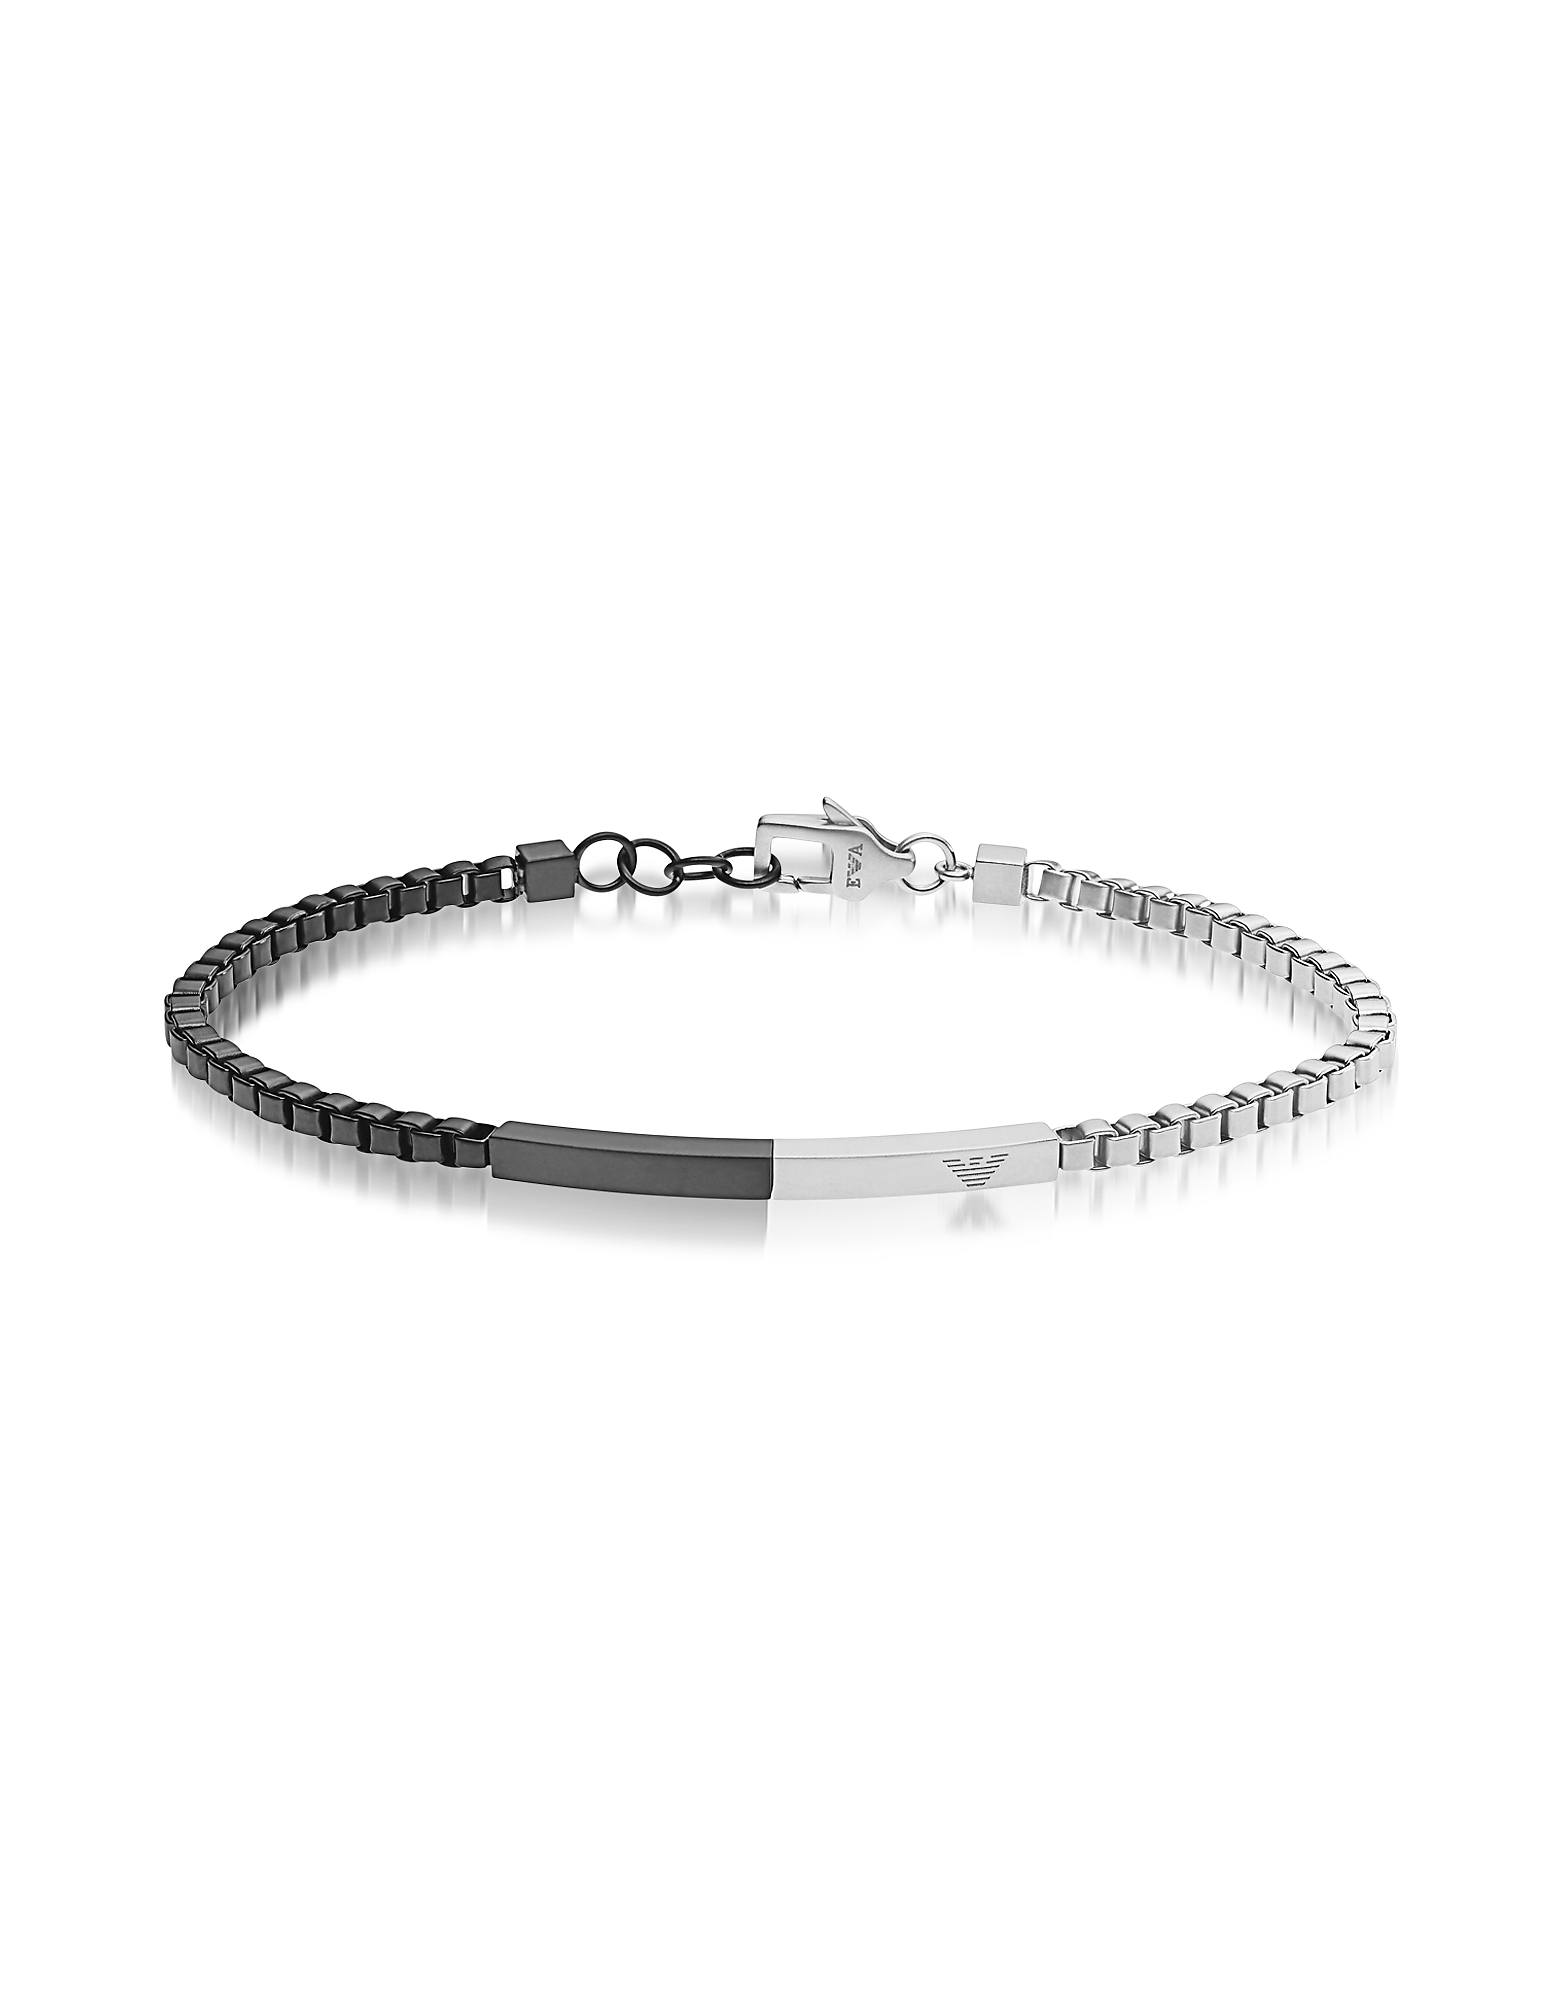 Heritage Two Tone Stainless Steel Men's Bracelet Emporio Armani